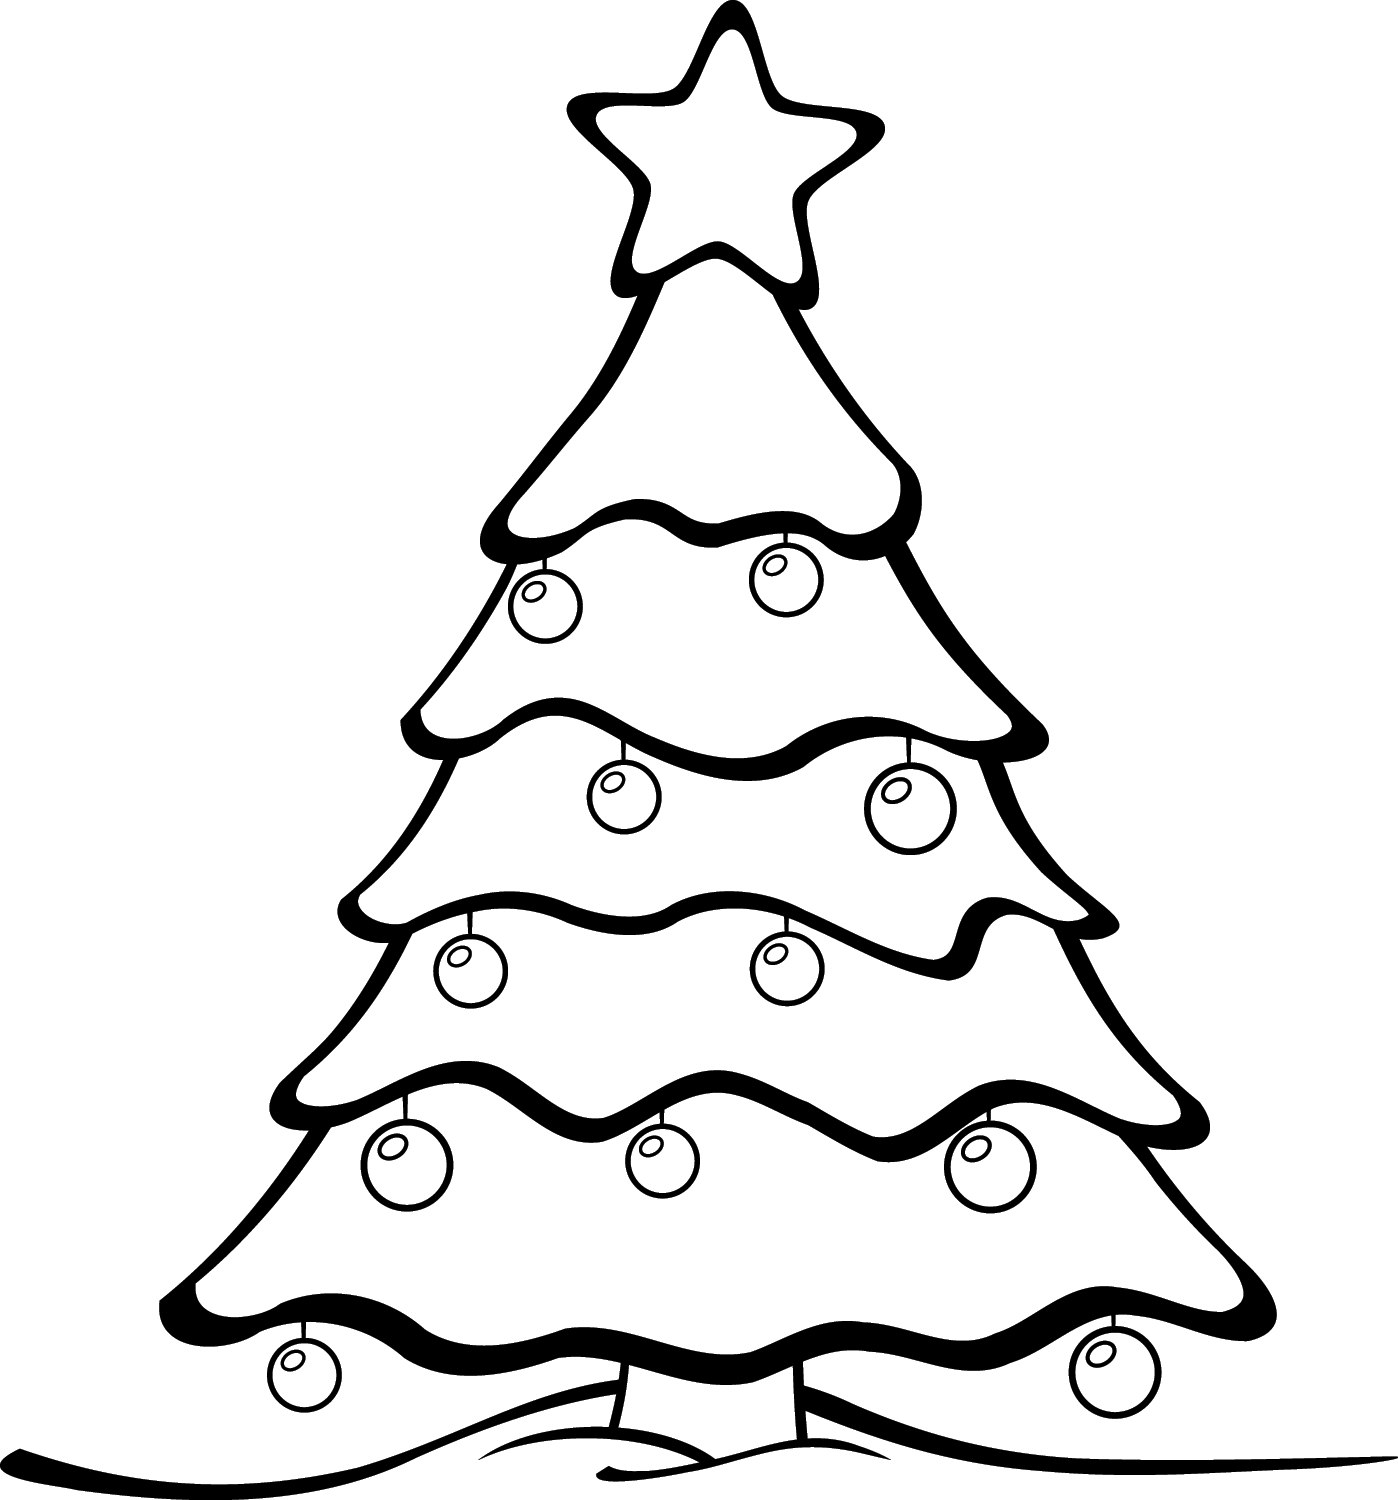 black-and-white-tree-clipart-christmas-tree-clip-art-black-and-white ...